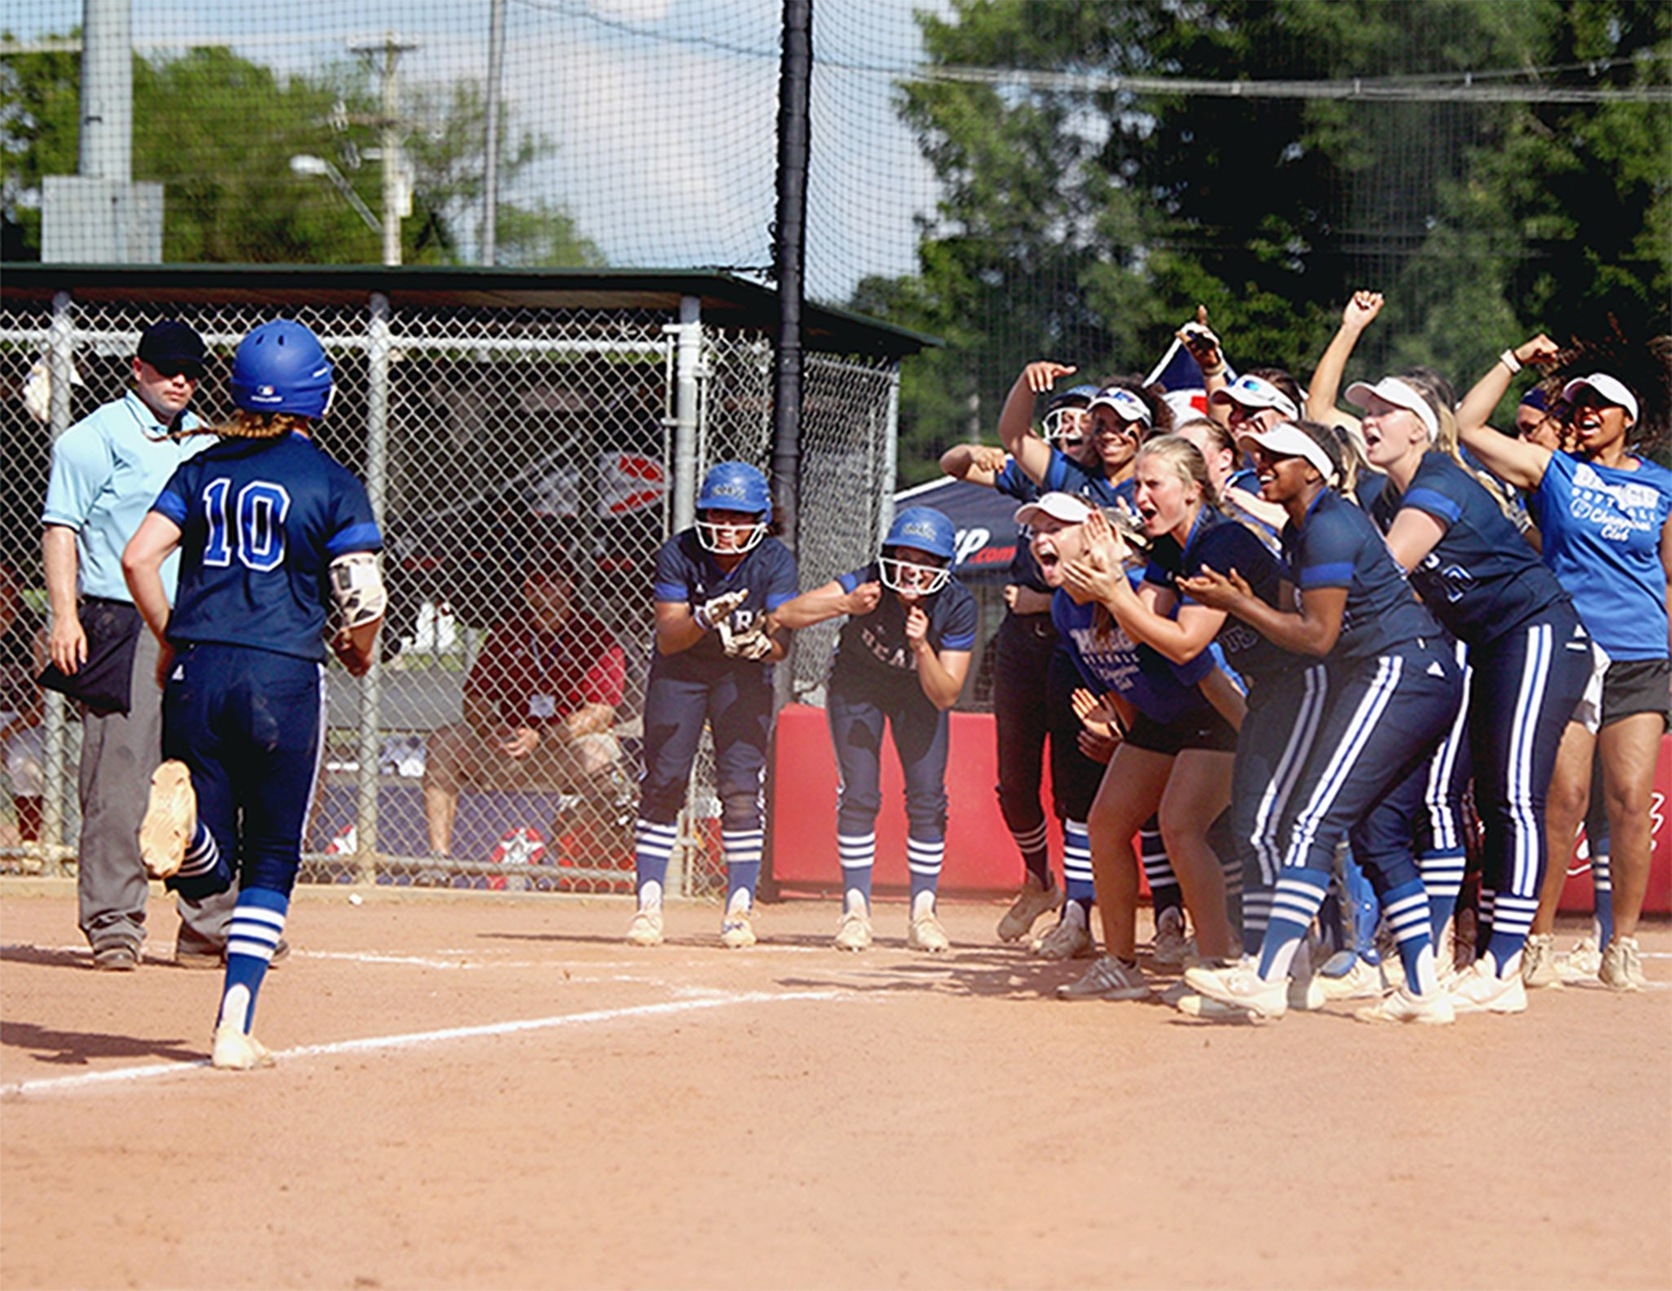 DMACC softball team finishes third in NJCAA DII Softball Championship